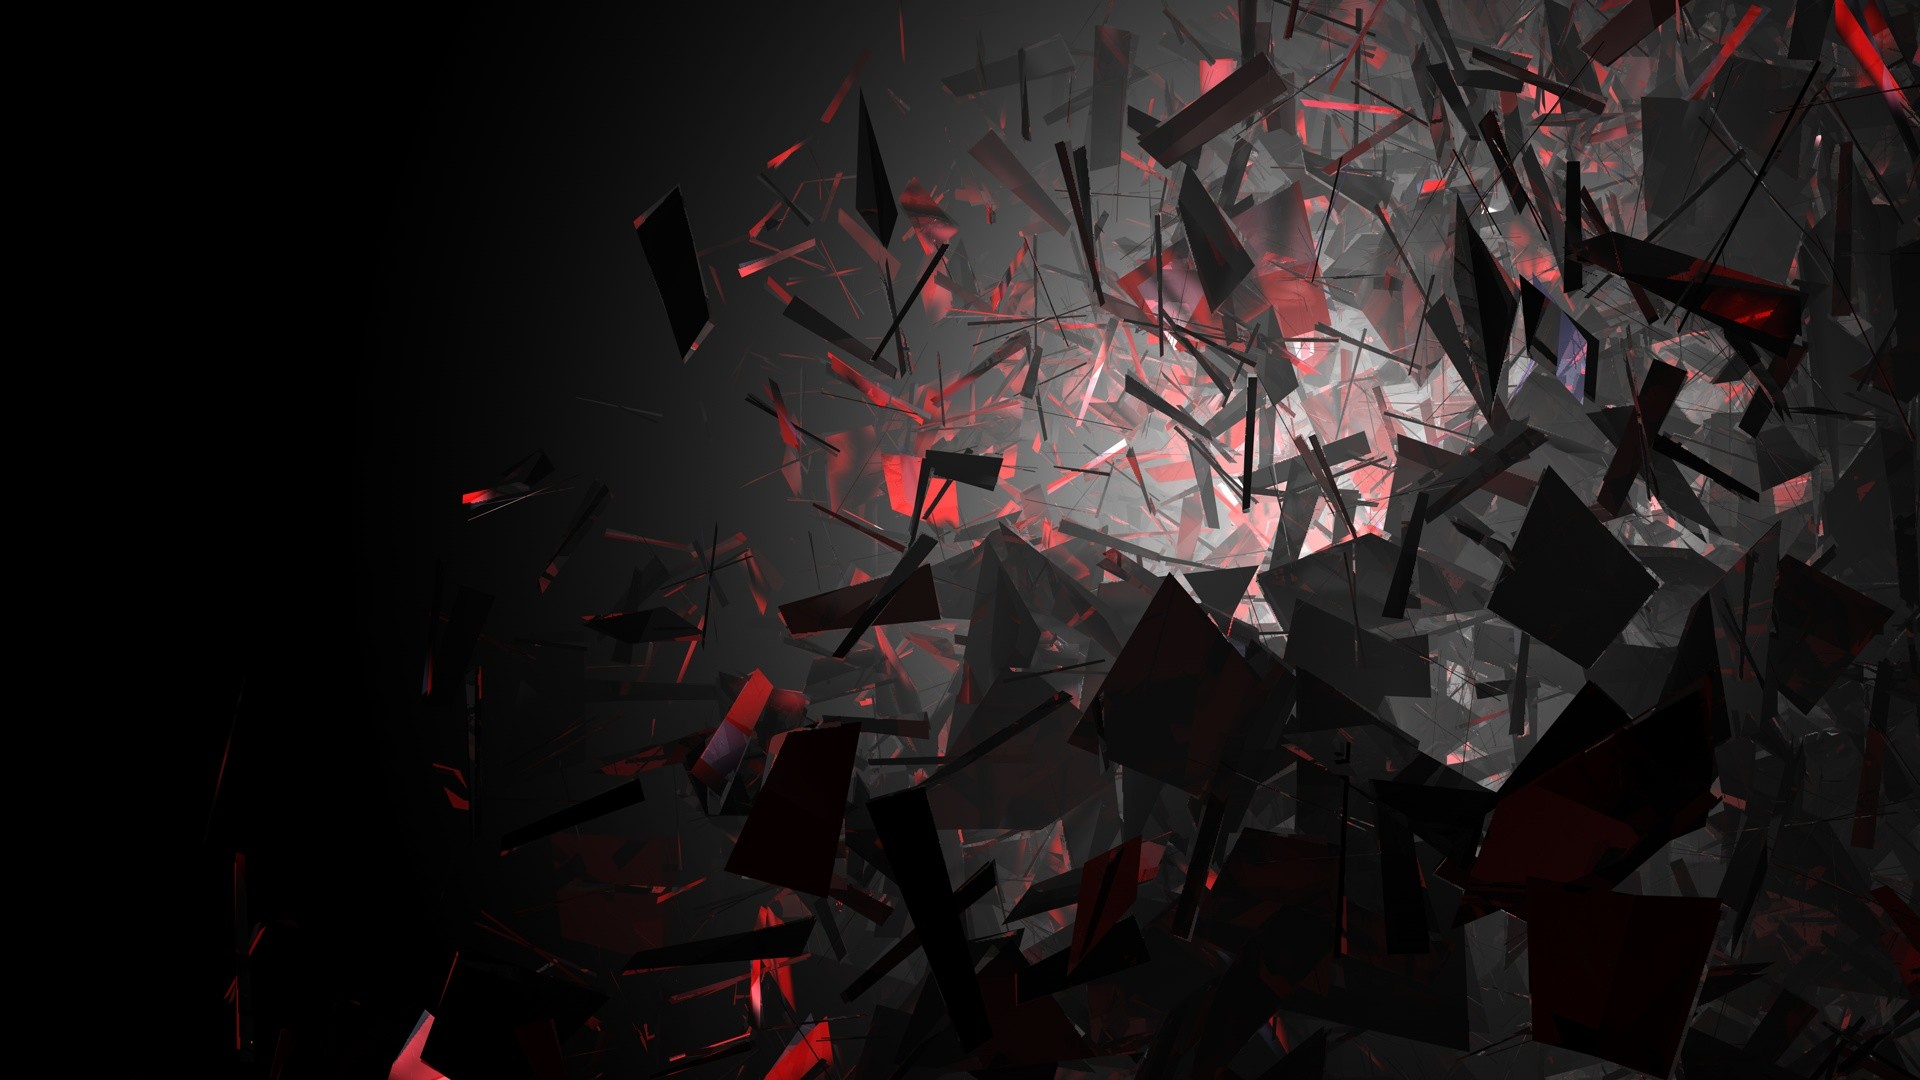 26 Amazing Cool Red And Black Abstract